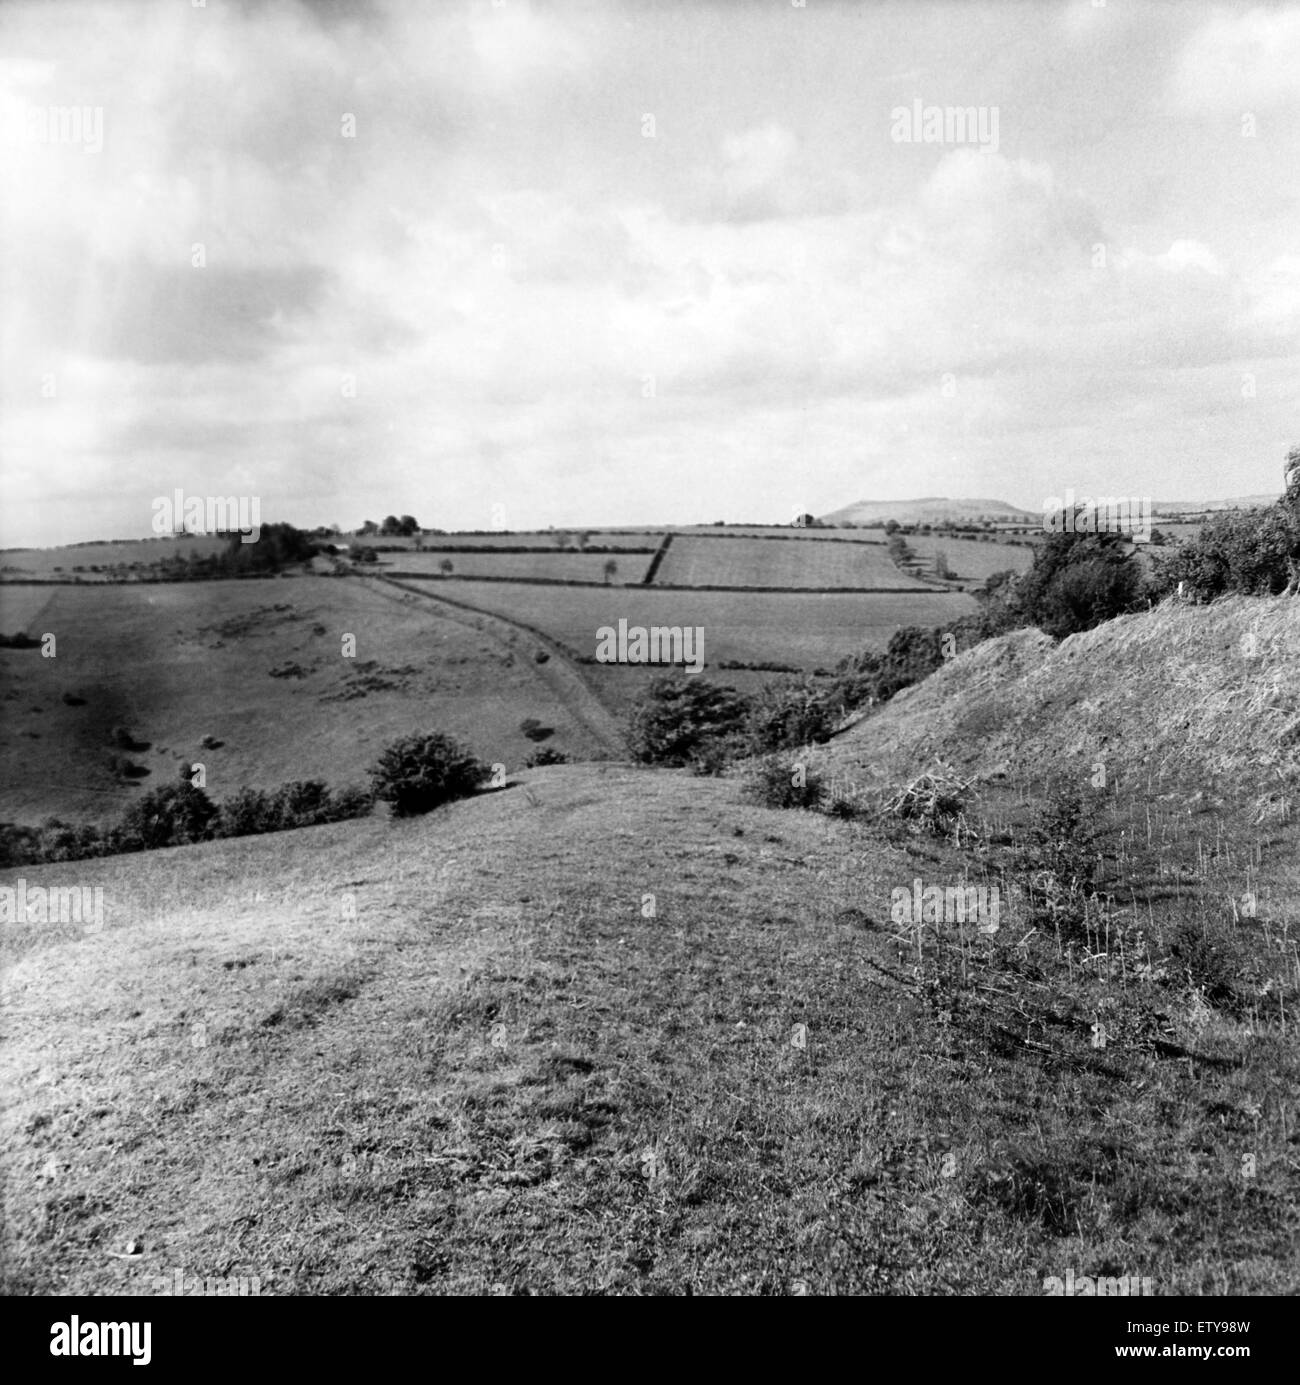 Offa's Dyke is a large linear earthwork that roughly follows the current border between England and Wales. Looking - Stock Image